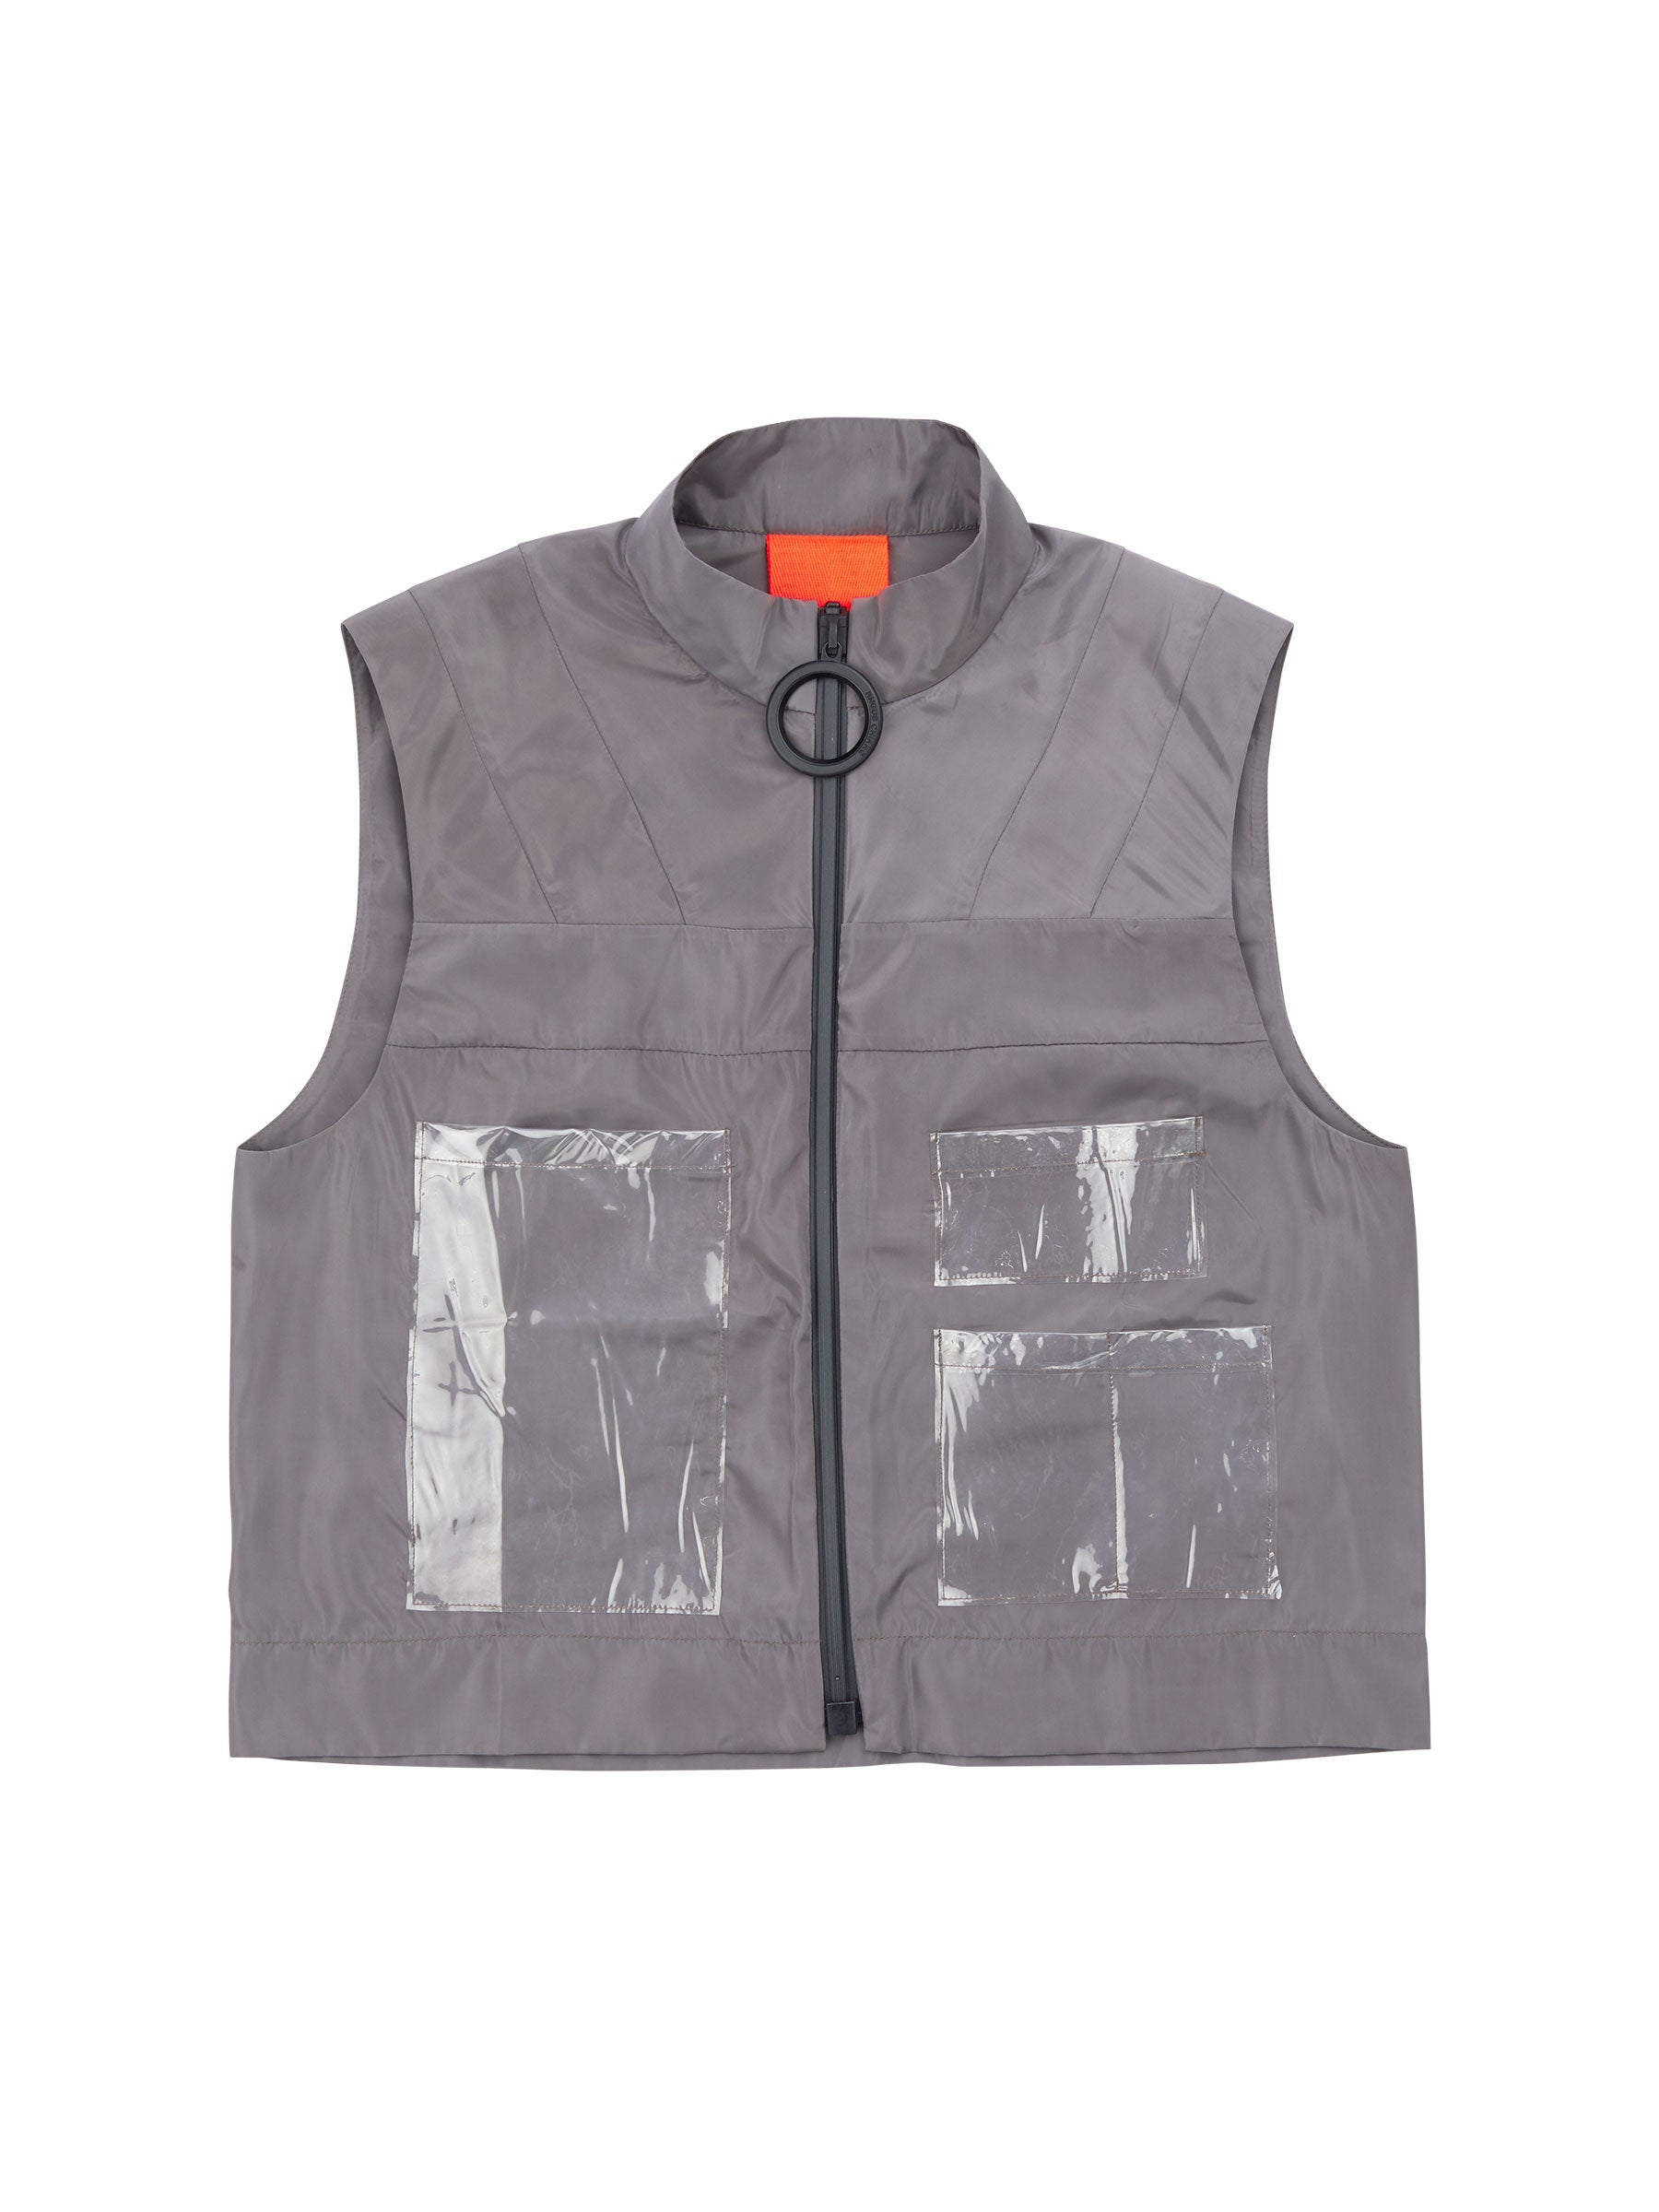 Grandfather Vest